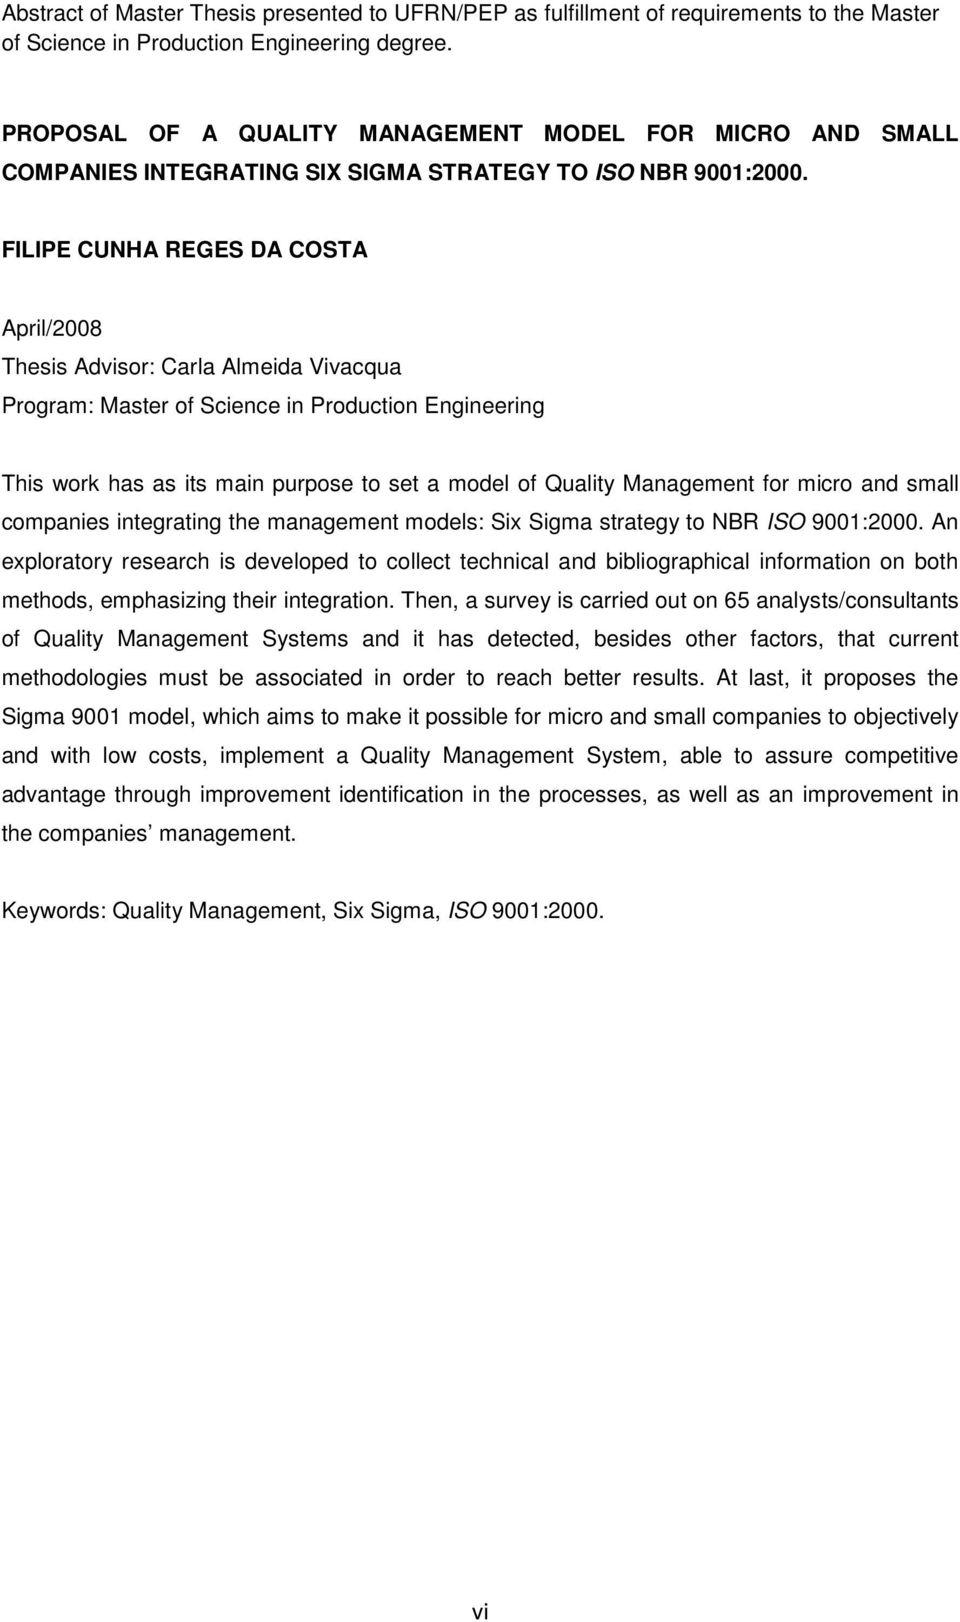 FILIPE CUNHA REGES DA COSTA April/2008 Thesis Advisor: Carla Almeida Vivacqua Program: Master of Science in Production Engineering This work has as its main purpose to set a model of Quality